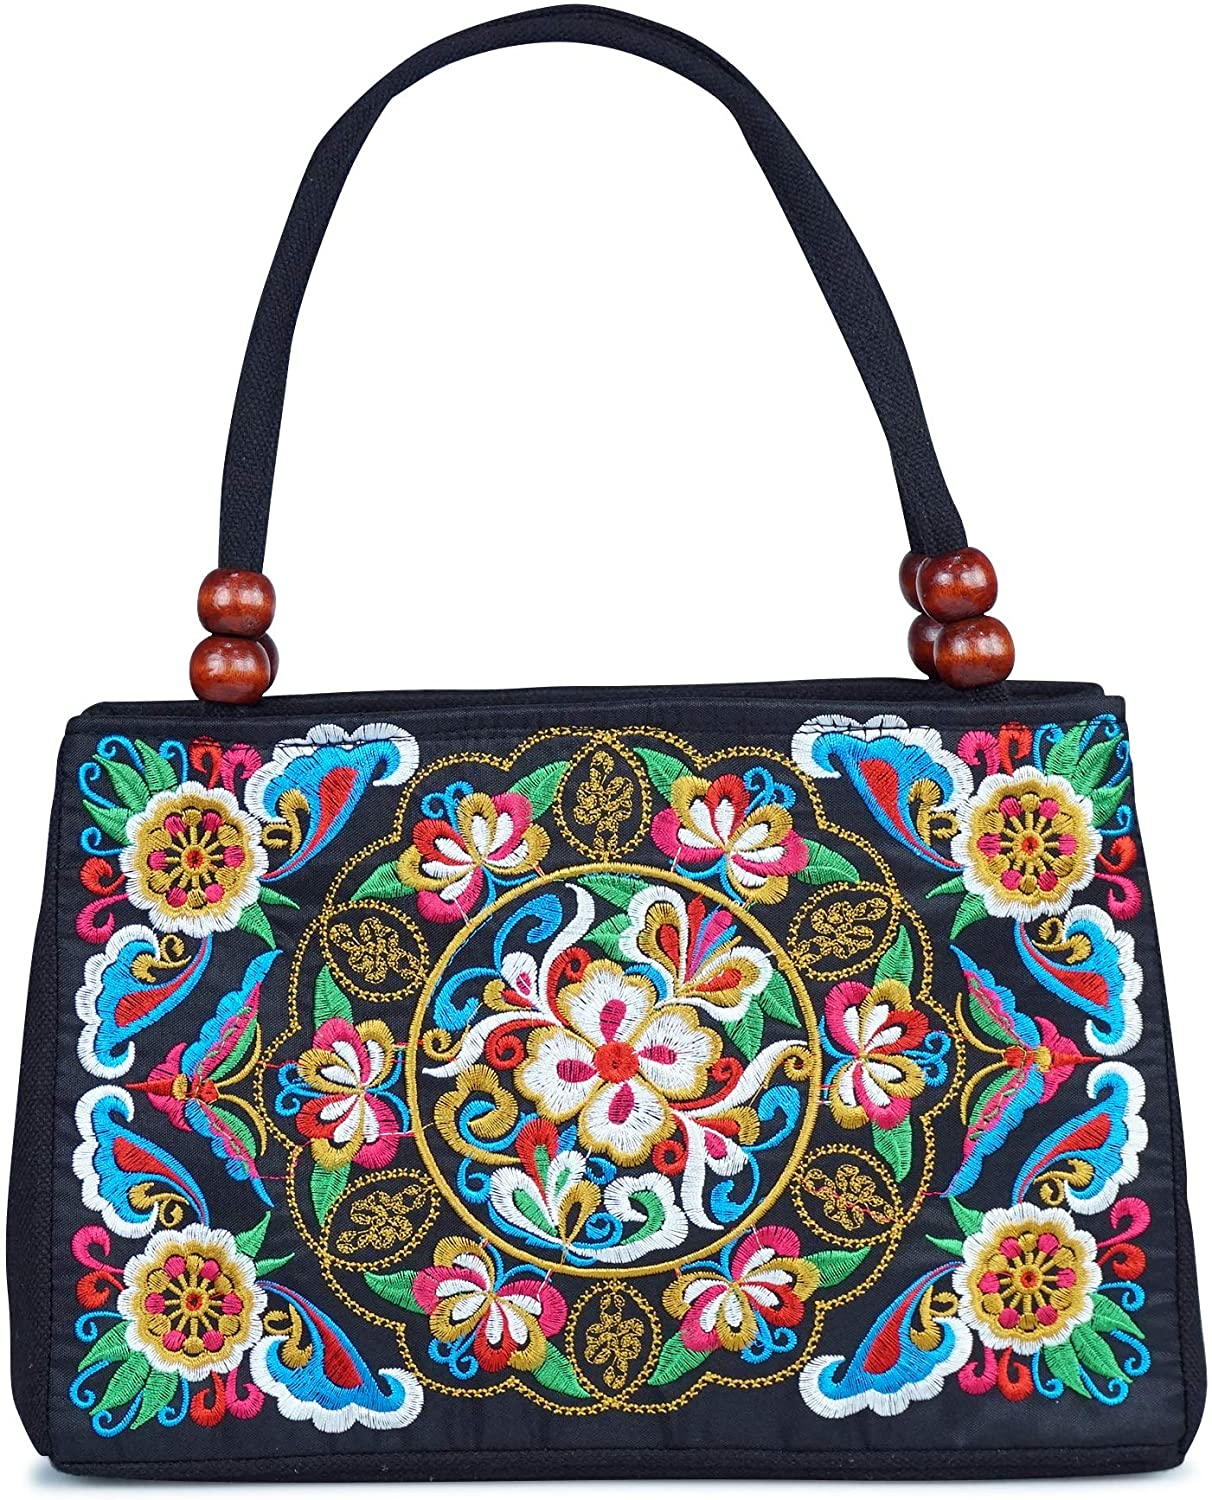 Double-Sided Embroidery Totes Bag Travel Beach Bag Vintage Embroidery Ethnic Shoulder Bags